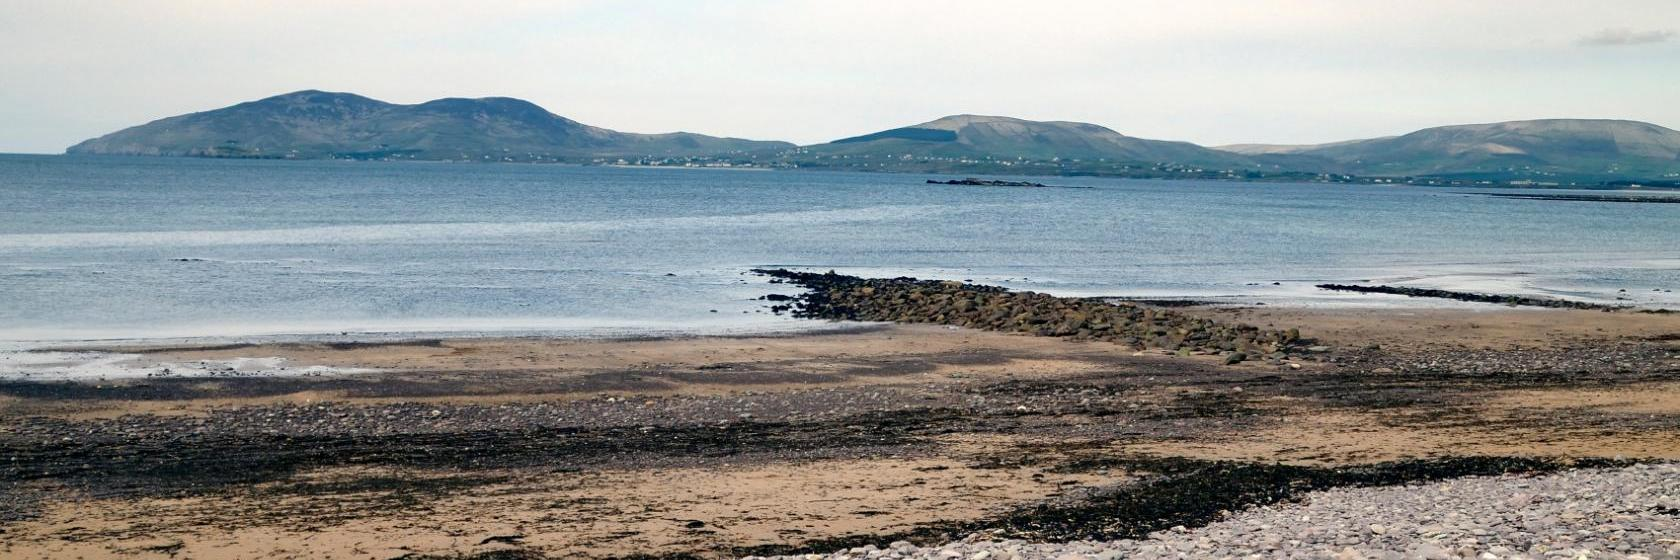 Inch Beach Holiday Rentals & Homes - County Kerry - Airbnb